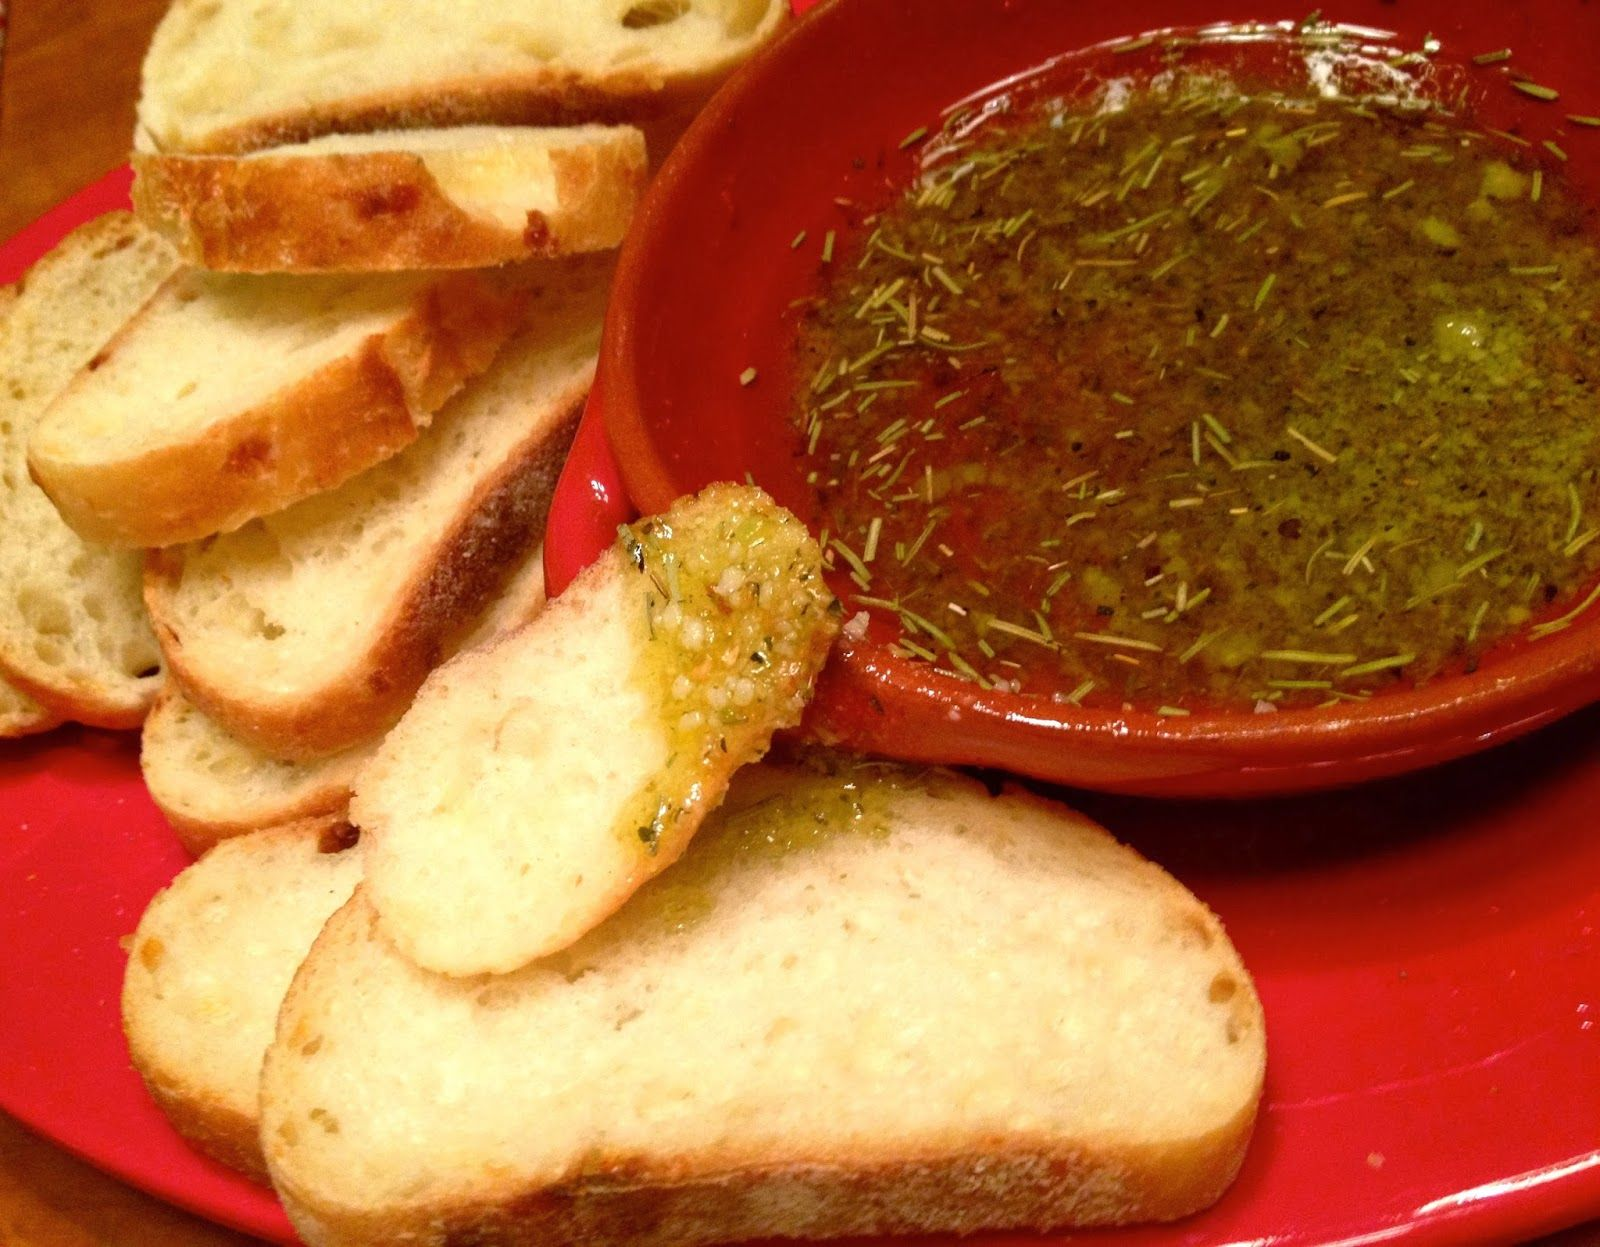 A Southern Soul: Garlic Infused Dipping Oil for Bread